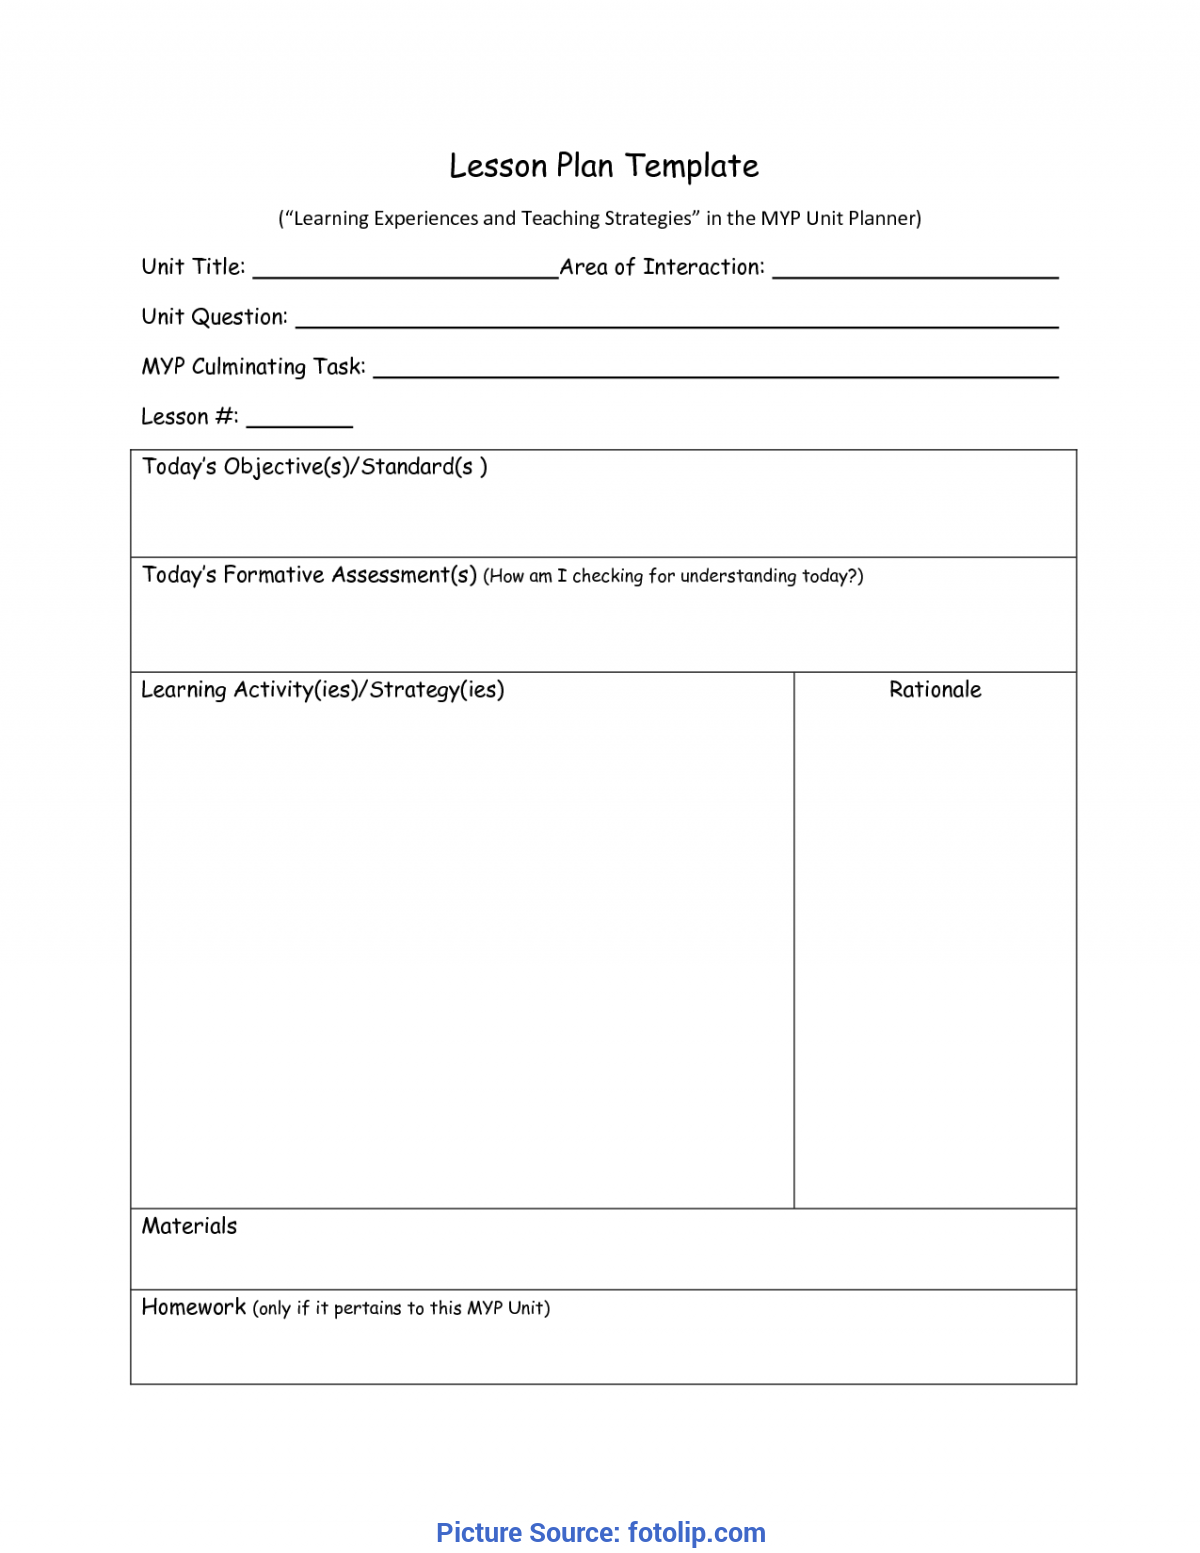 Special Weekly Lesson Plan Template Pdf Weekly Lesson Plan